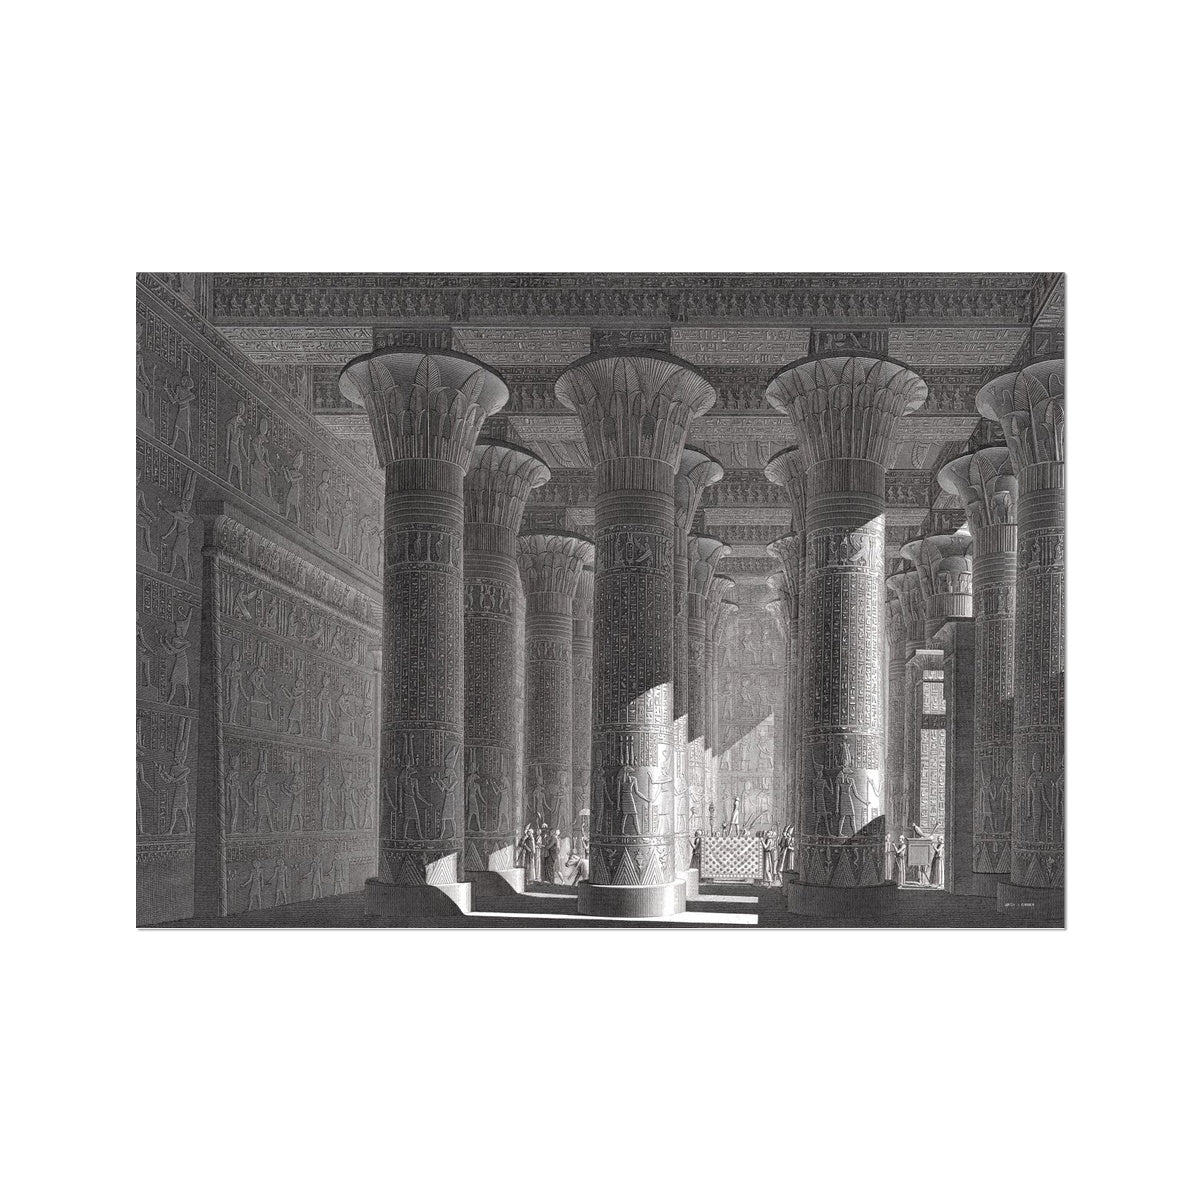 Temple of Khnum Portico Interior - Esna Egypt -  Etching Paper Print